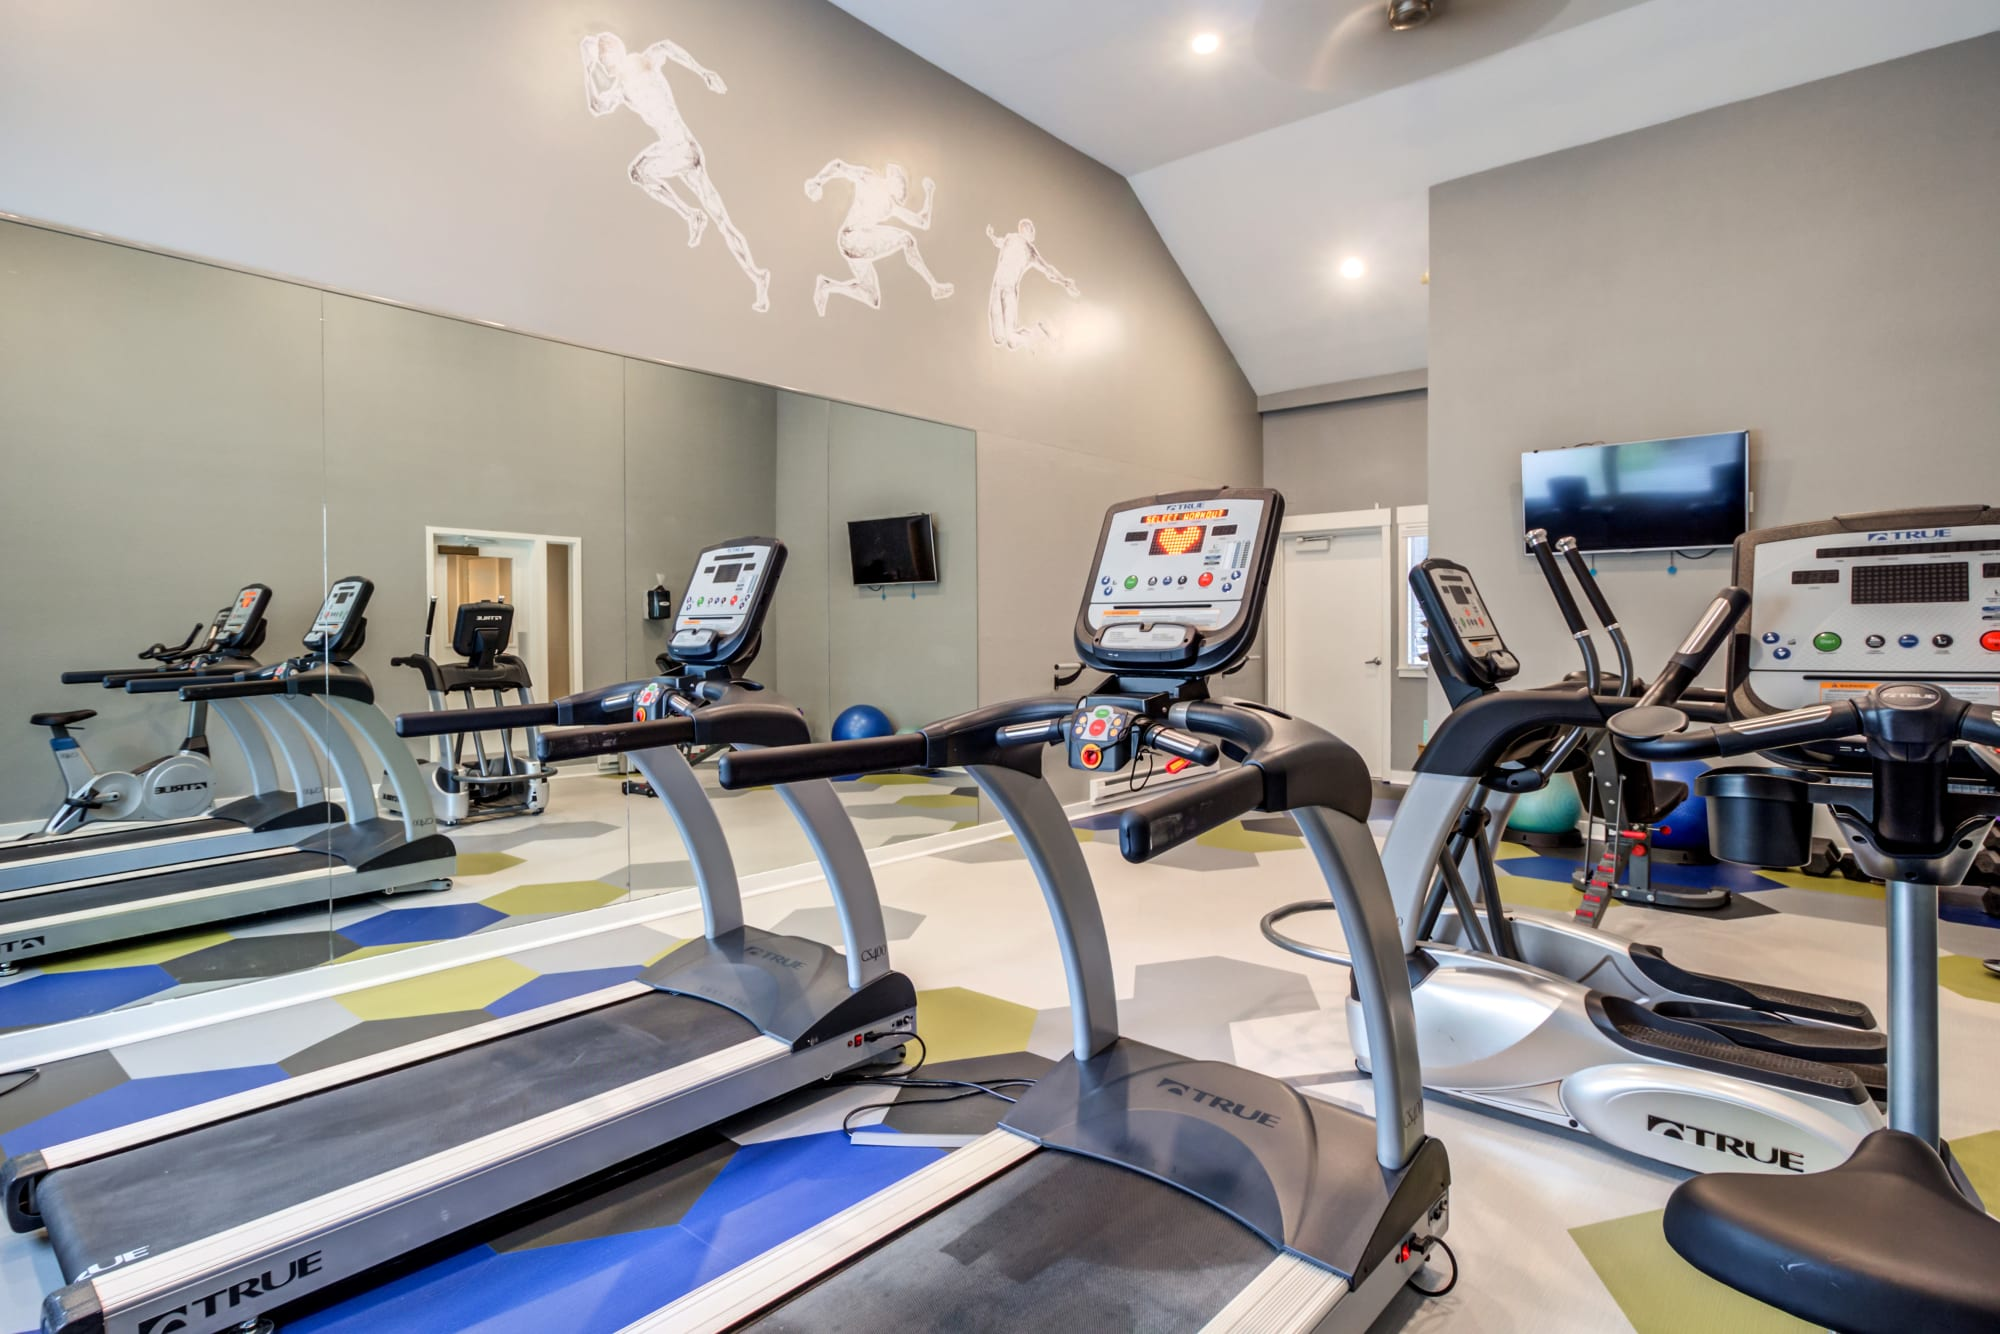 fitness center with cardio machines and weights